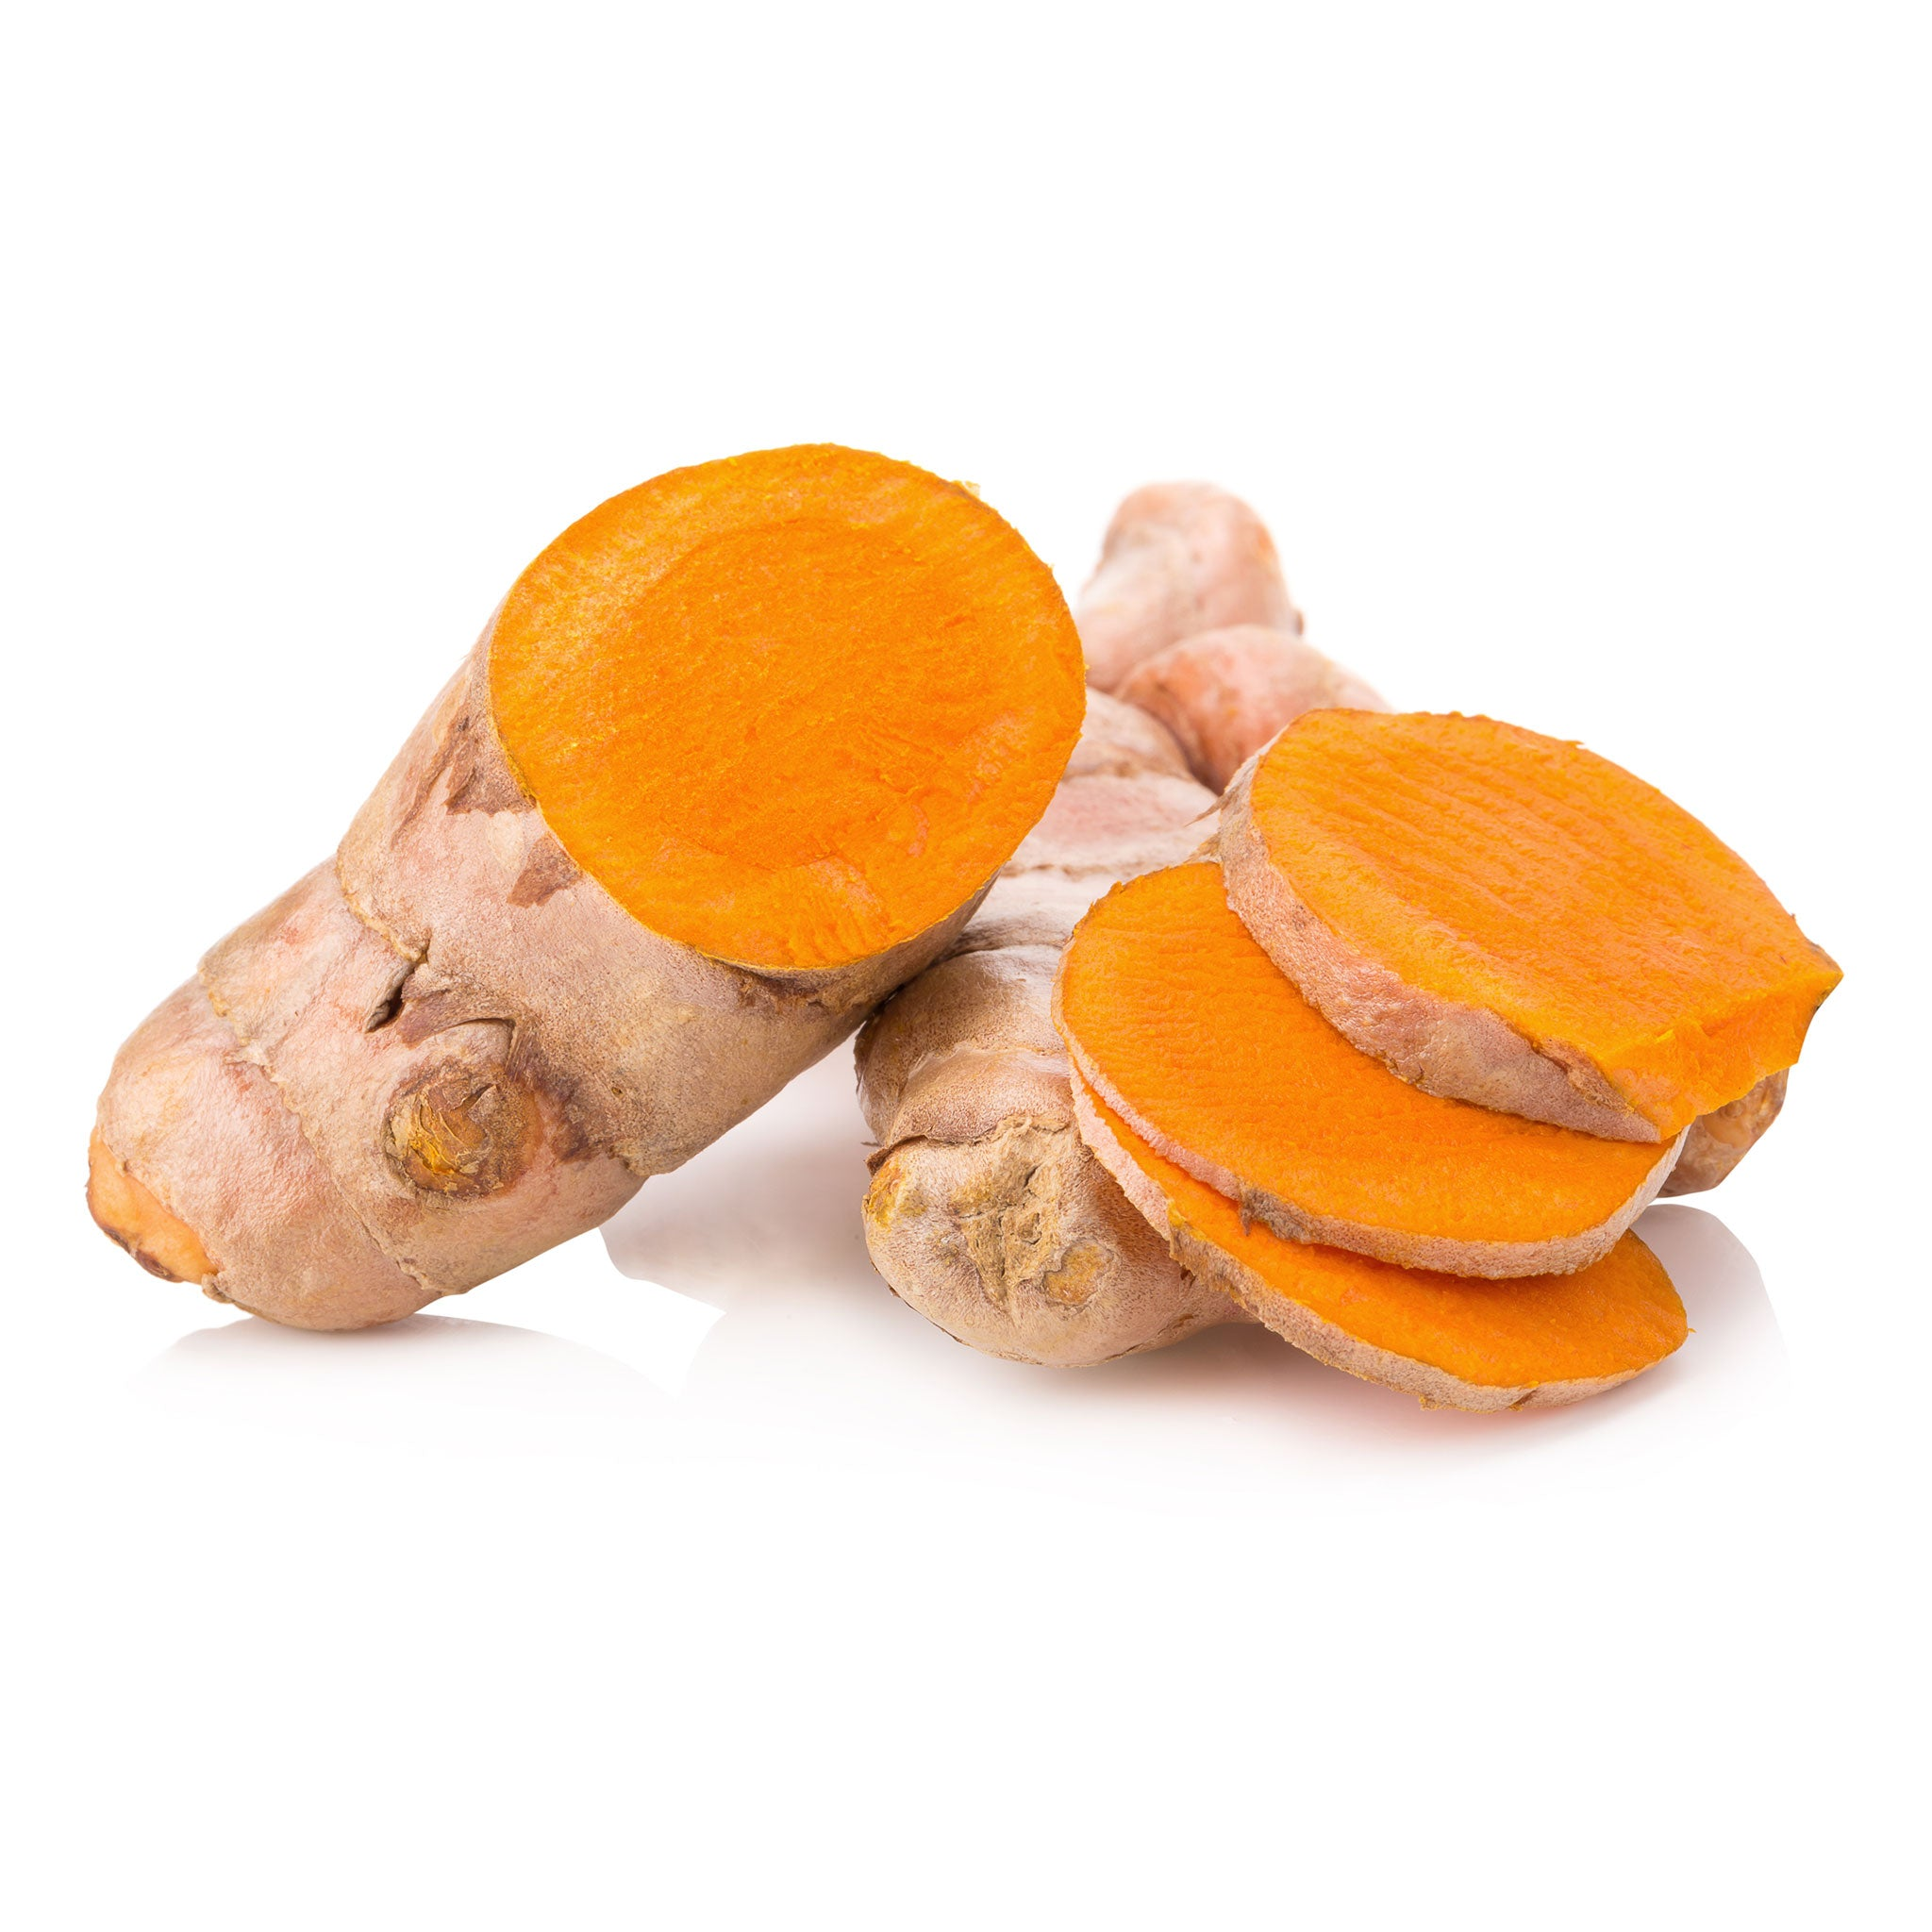 Fresh Thai turmeric (haldi) 100g - imported weekly from Thaiand